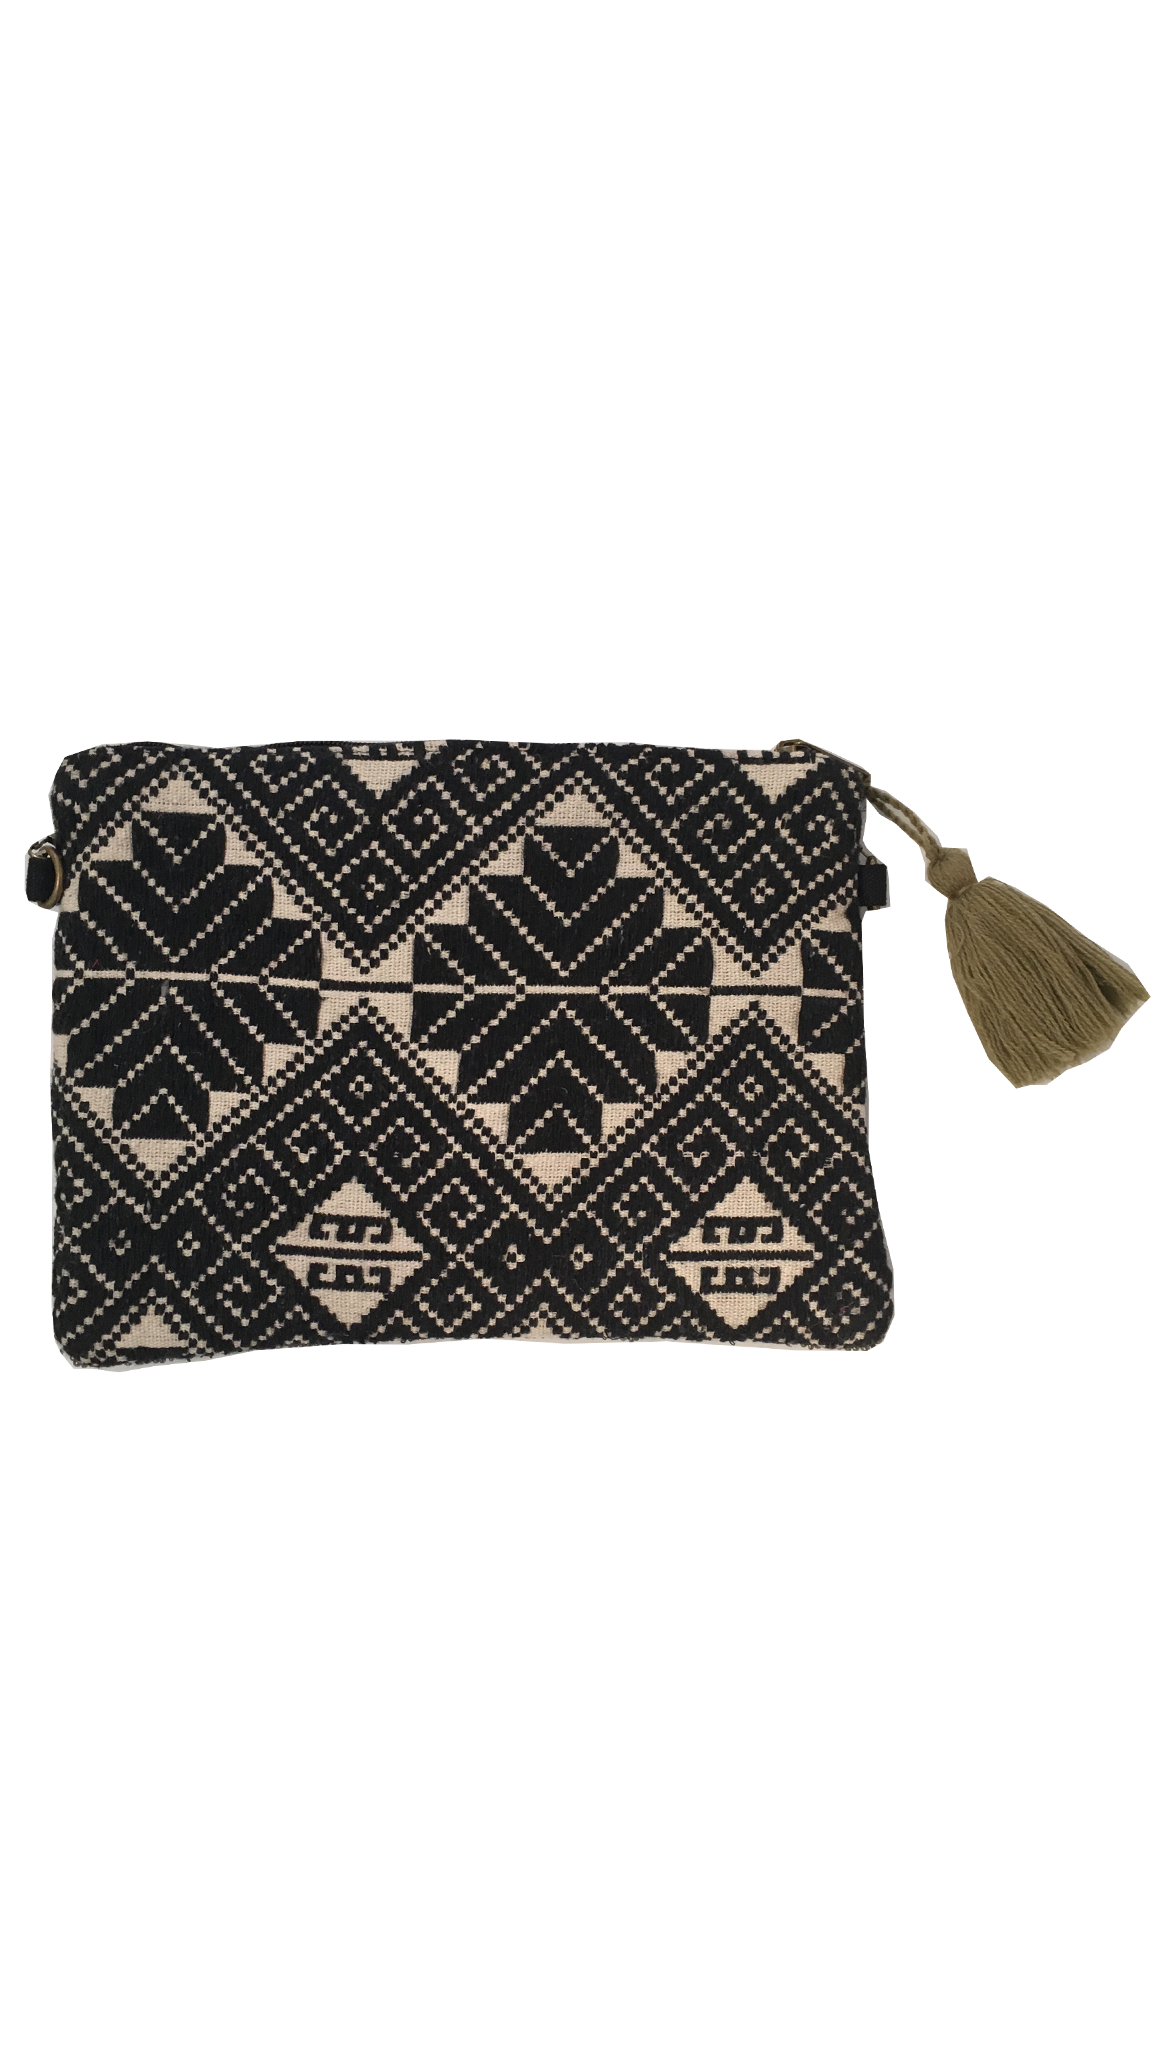 Moonlight Beach Clutch - Black